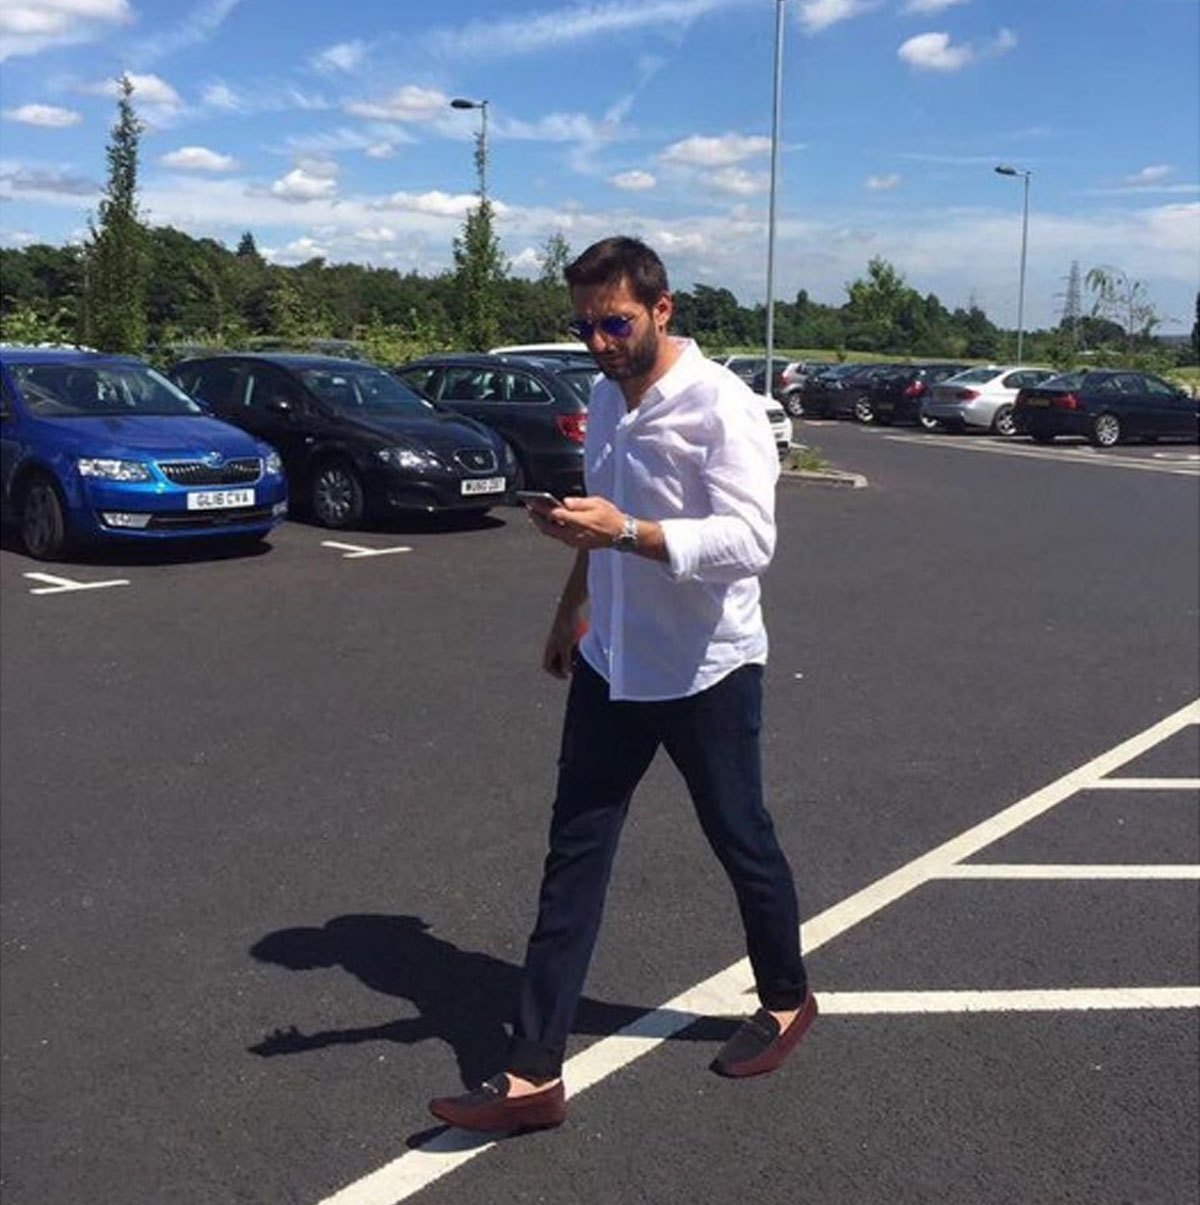 A quick run to the grocery store in a white button and jeans. - Instagram